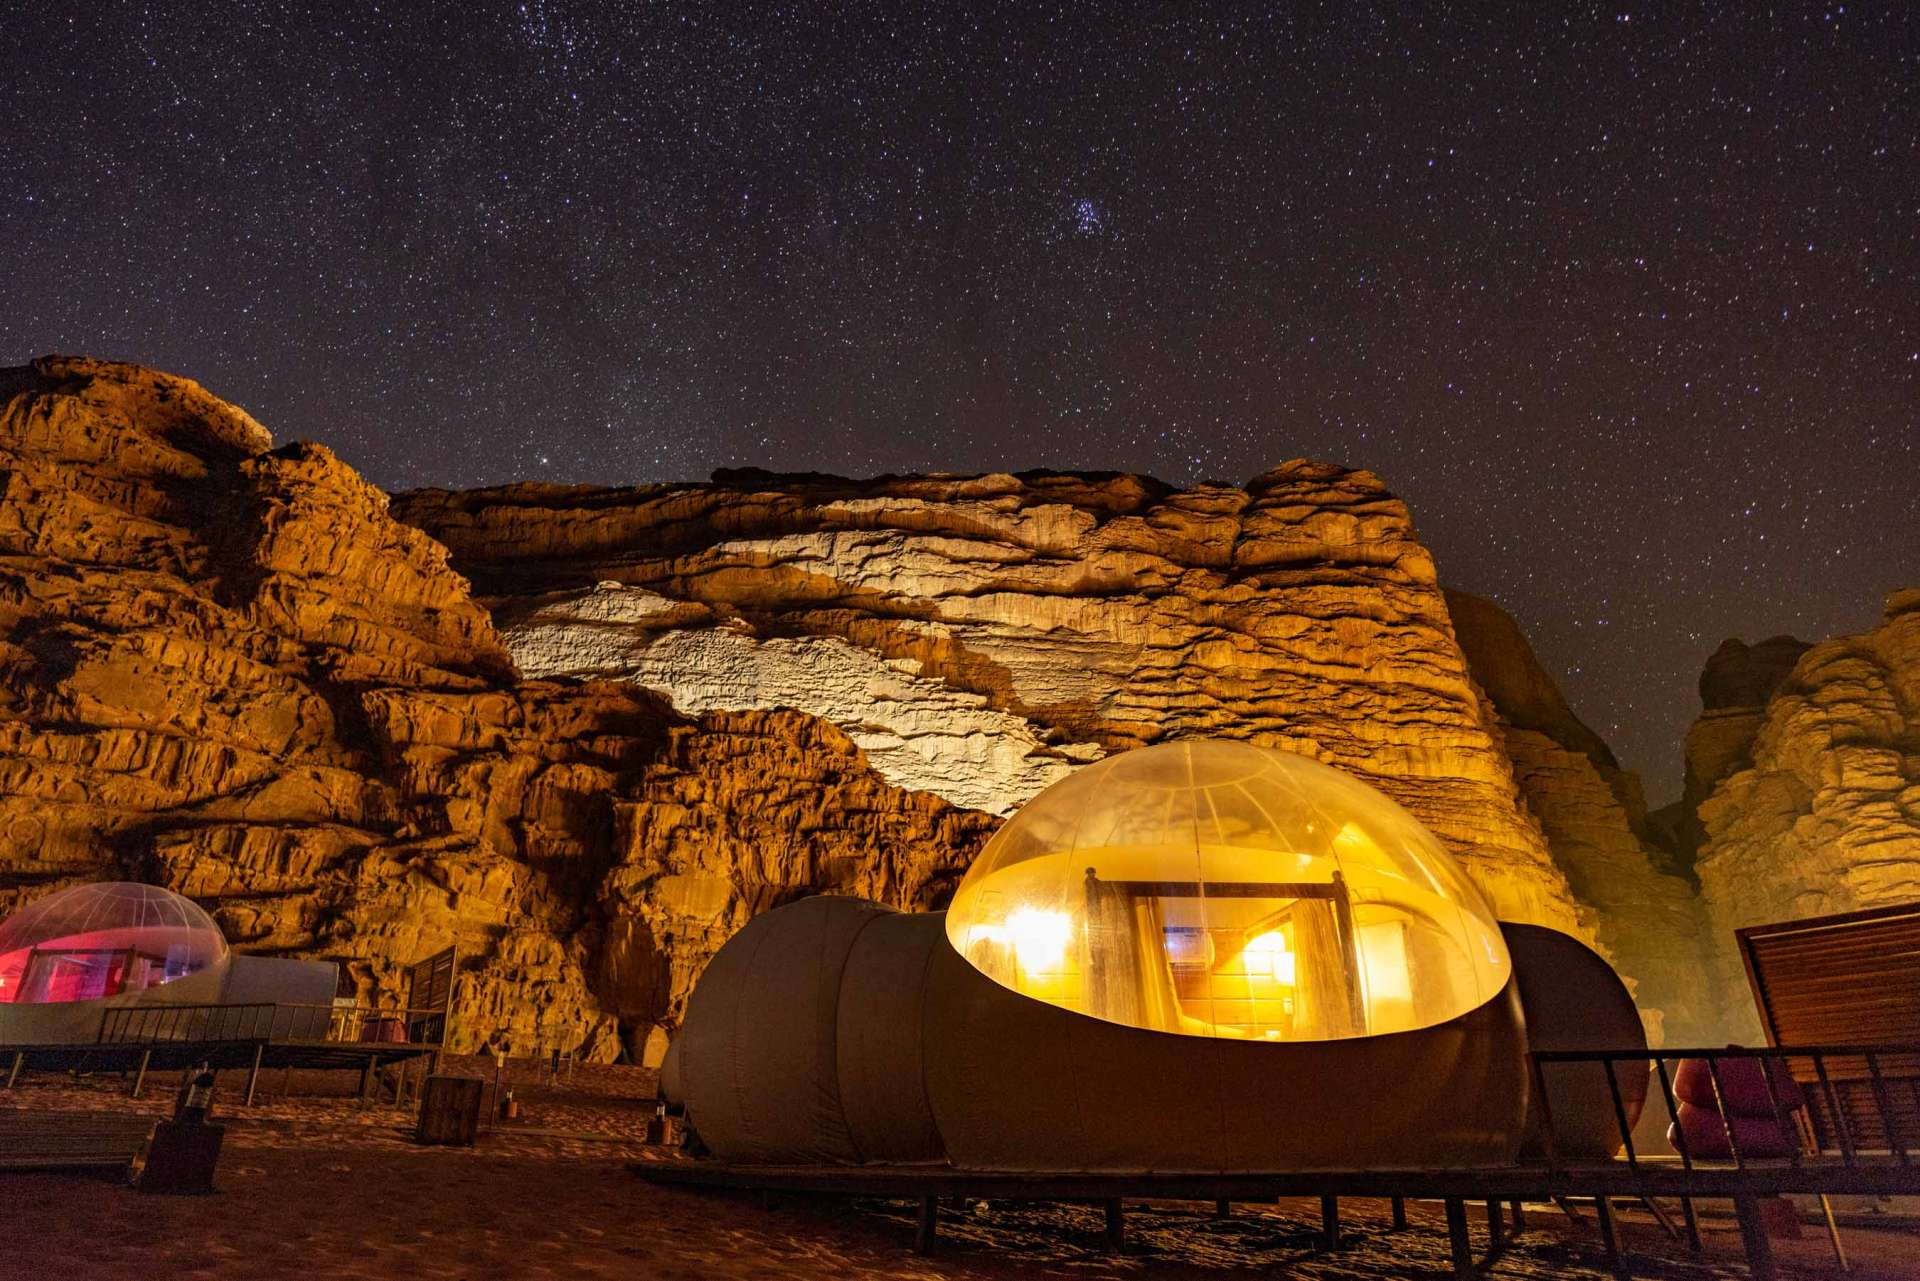 Wadi Rum Night Luxury Camp Full of Stars tent Jordan Enrico Pescantini 6